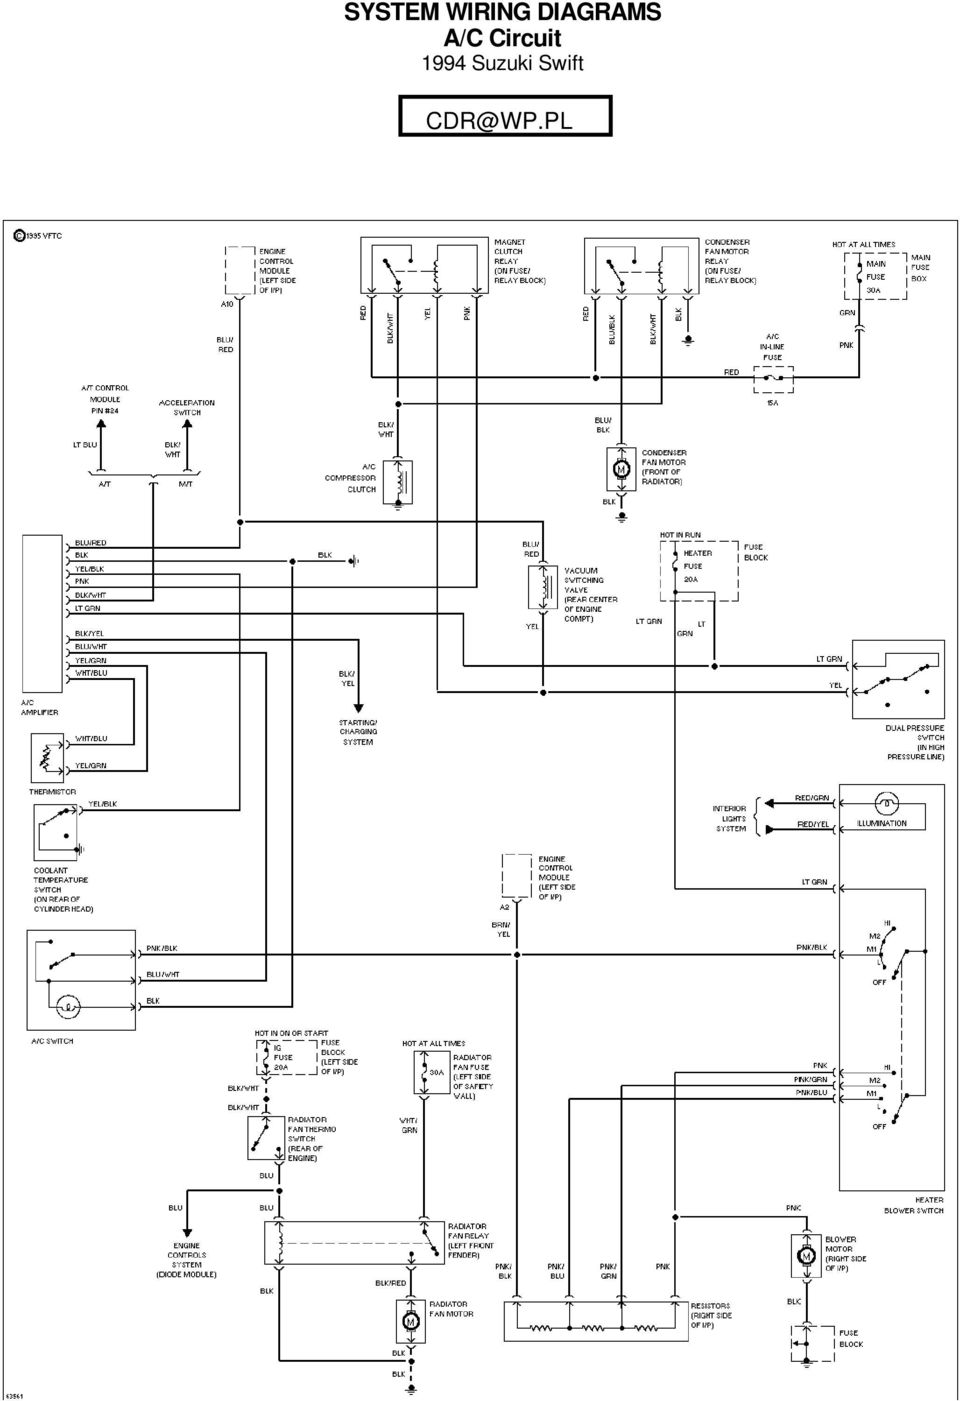 hight resolution of 1989 suzuki swift gti air conditioner wiring diagram and wiring rh 4 skriptoase de